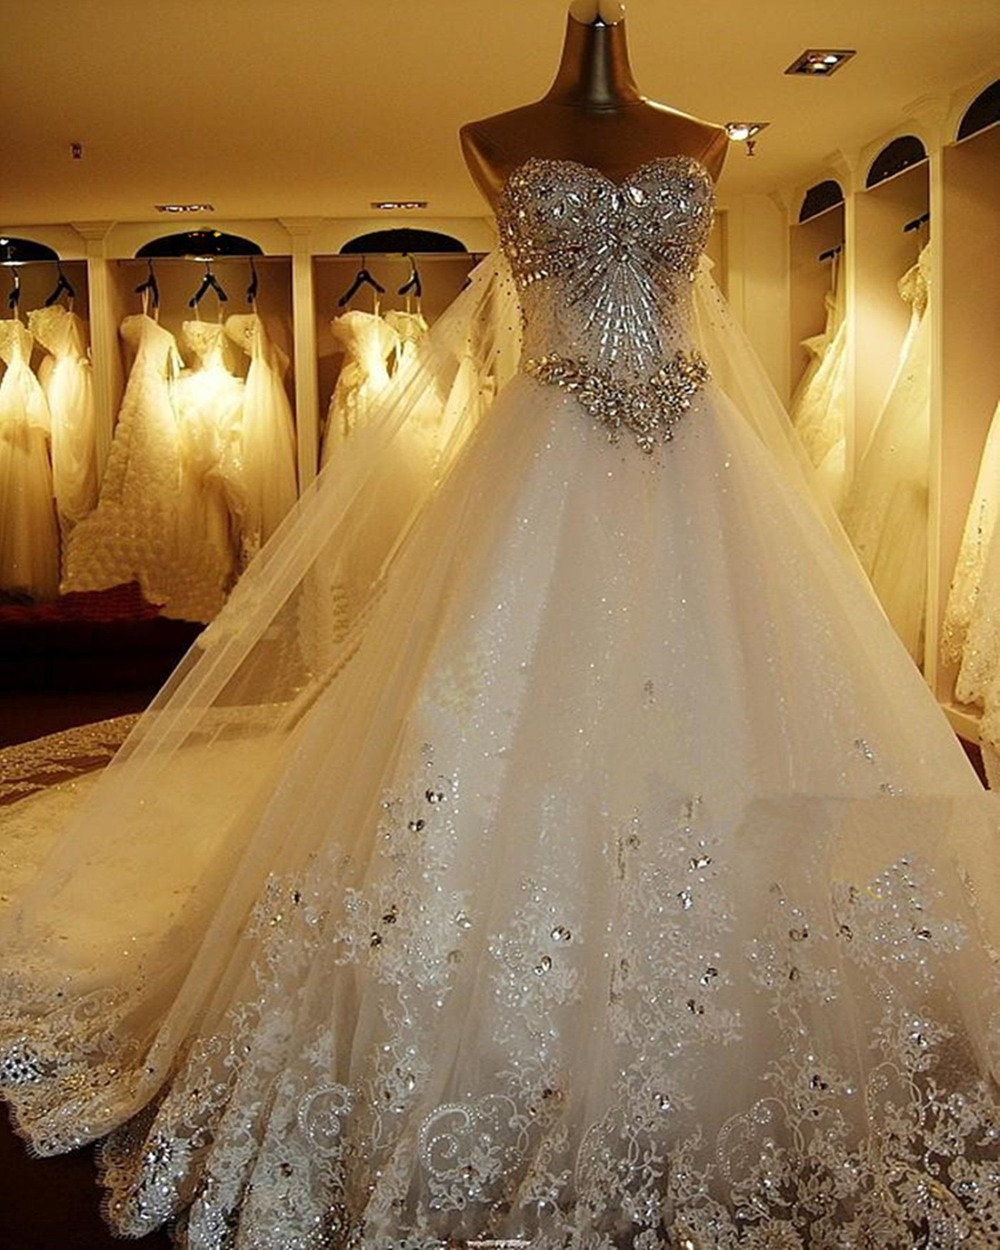 aliexpress wedding dresses Aliexpress com Buy Real White Lace Up Back Ball Gown Fashionable Crystal Wedding Dress Free Shipping